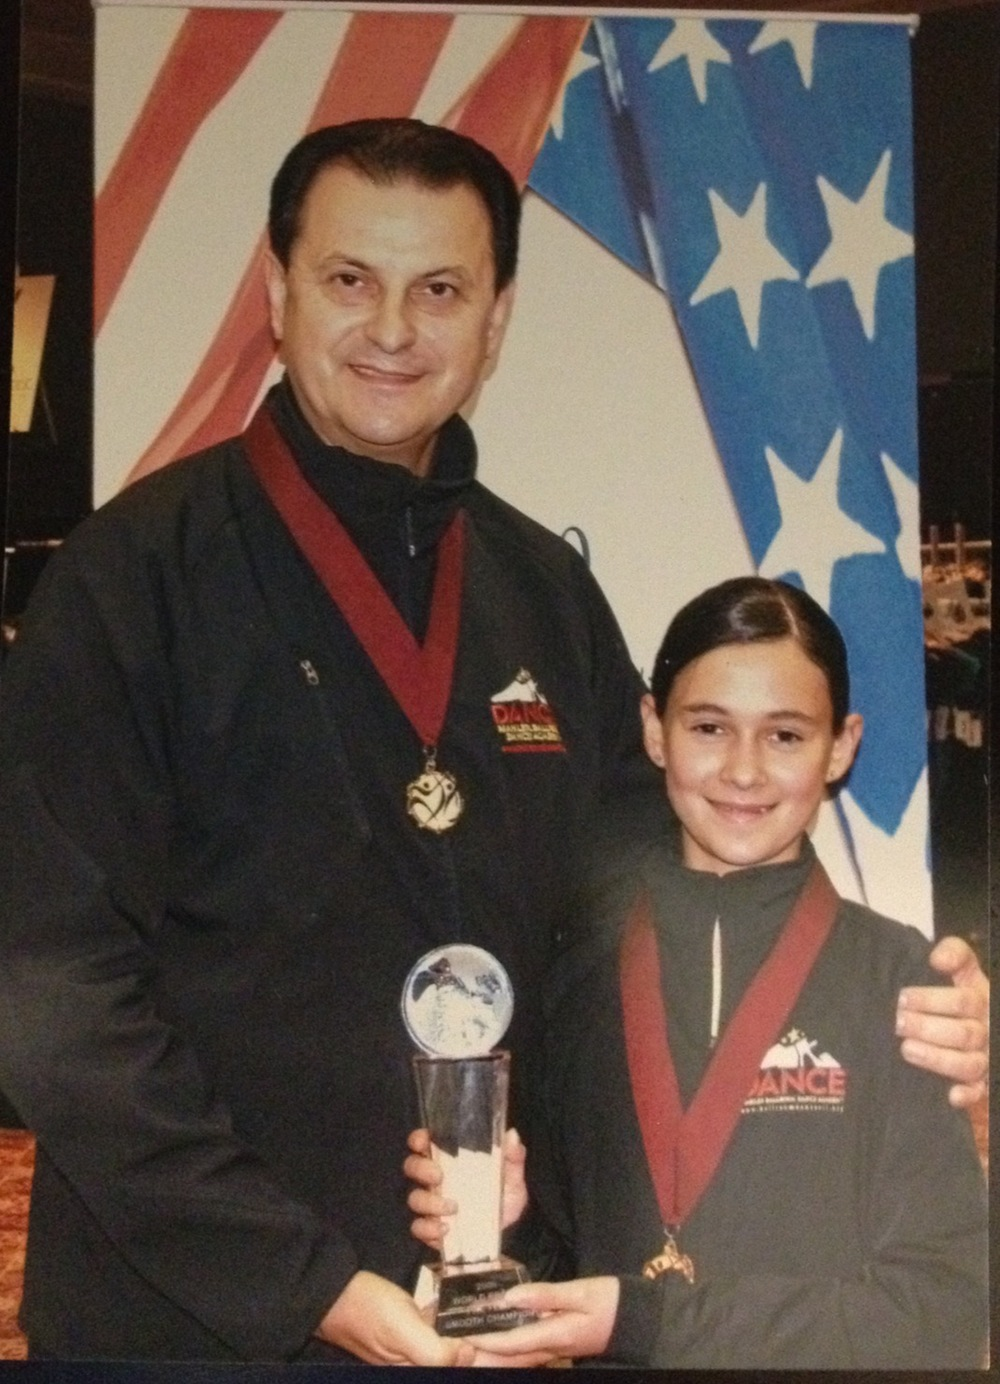 Vassily Lyashenko & Valerie Pelts 2009 World Pro-Am Preteen Champion  Ballroom Dance Hall of Fame, Columbus, OH